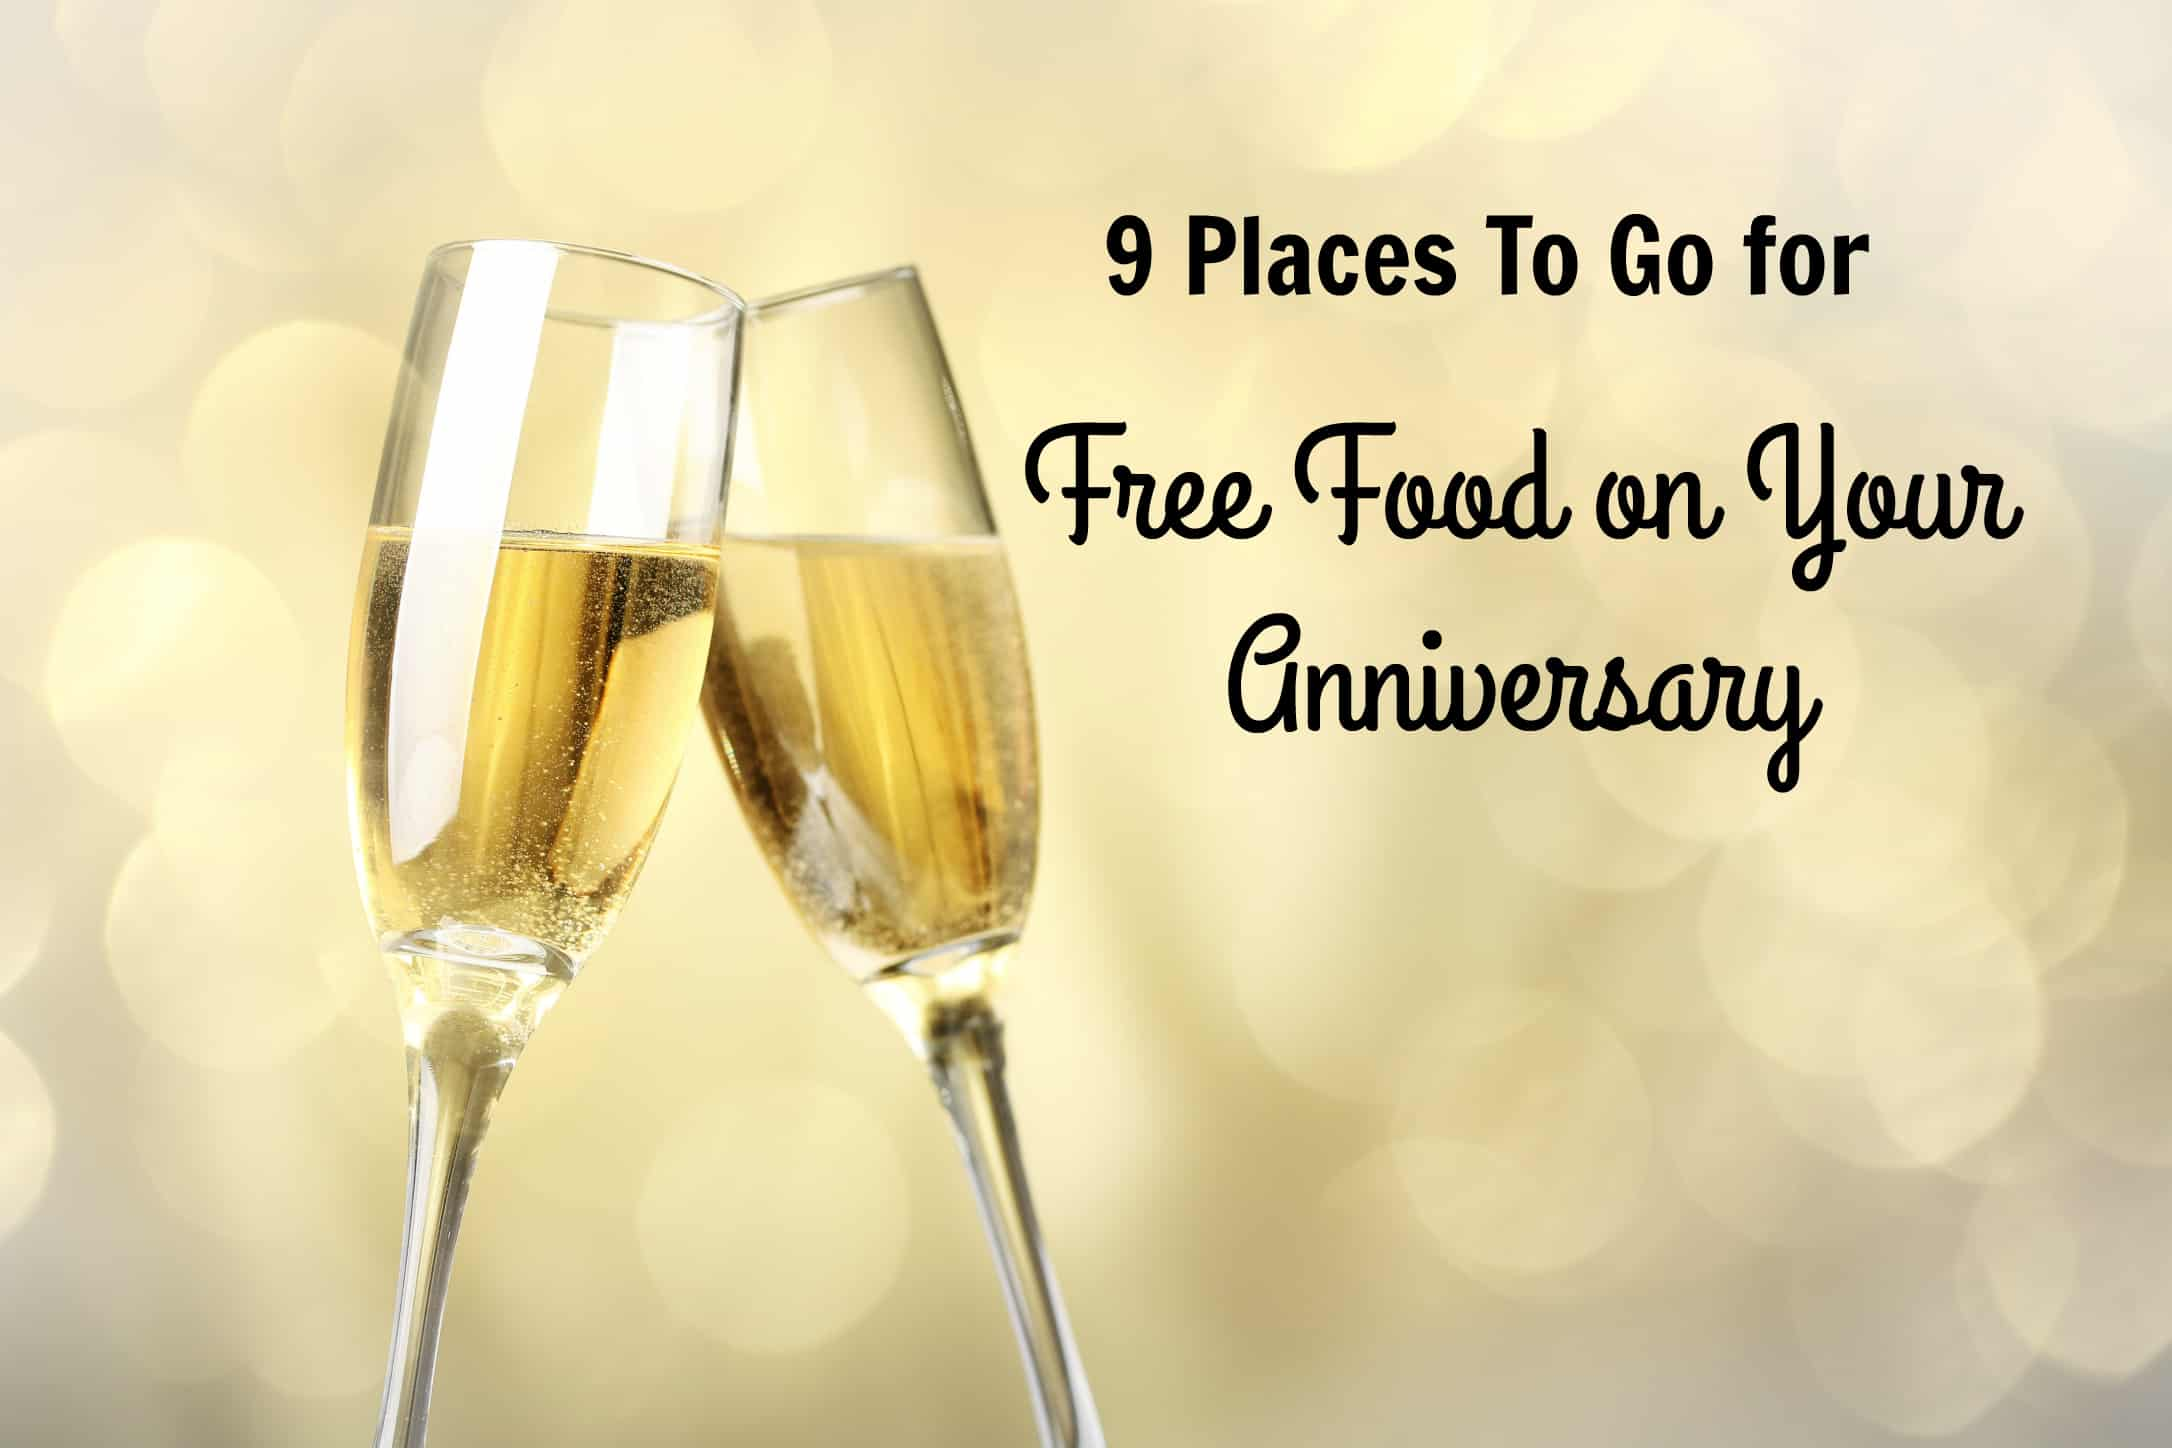 free food on your anniversary